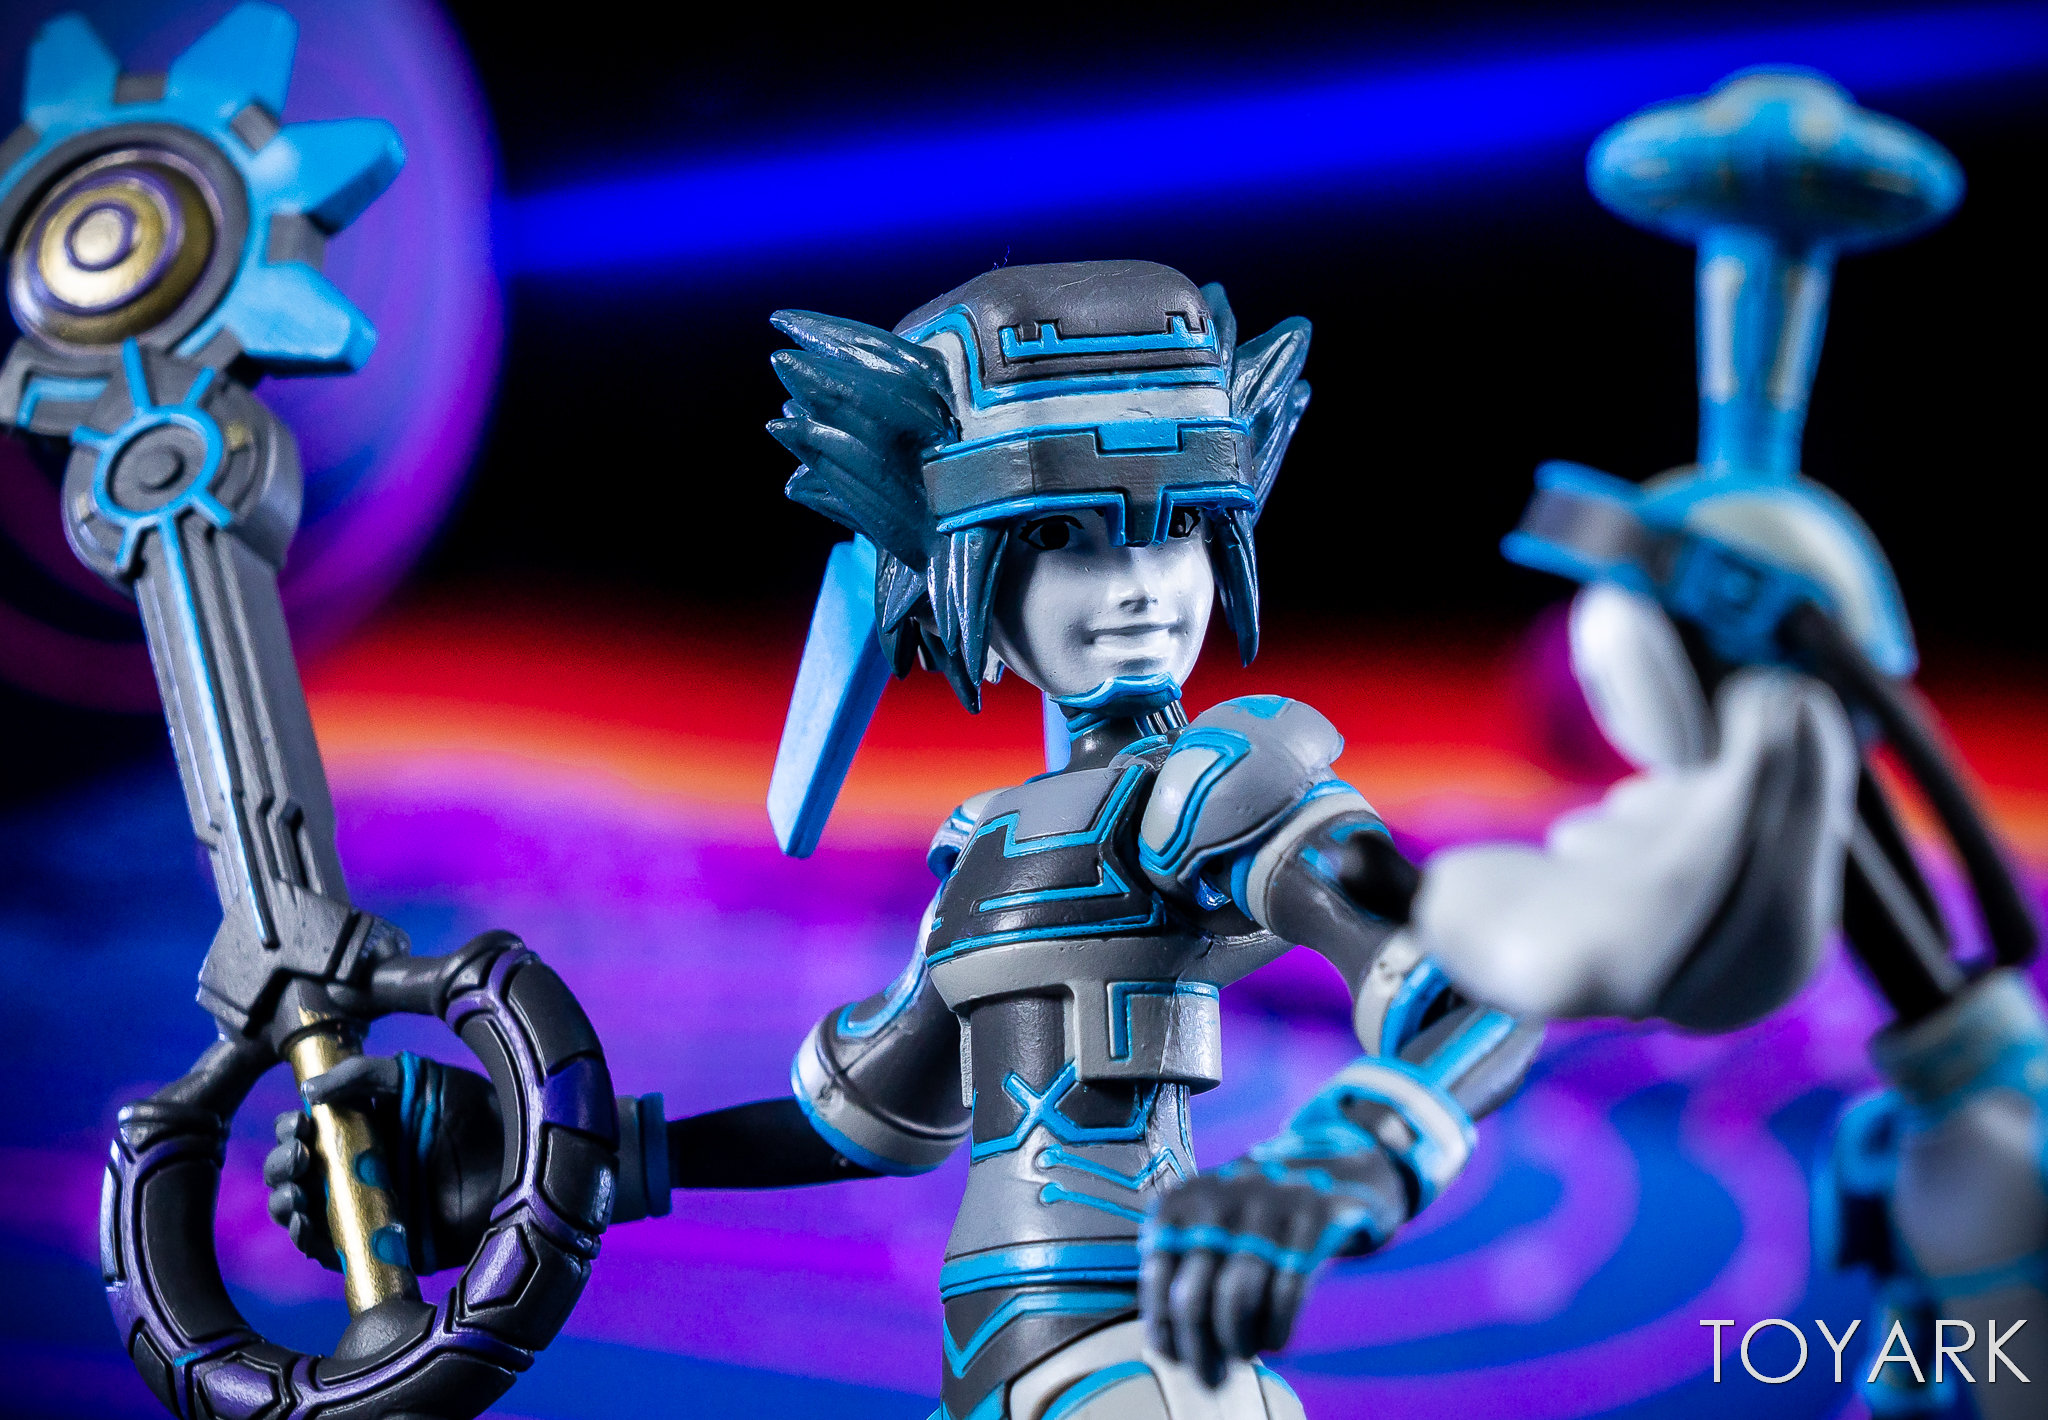 https://news.toyark.com/wp-content/uploads/sites/4/2019/02/DST-Kingdom-Hearts-Tron-032.jpg